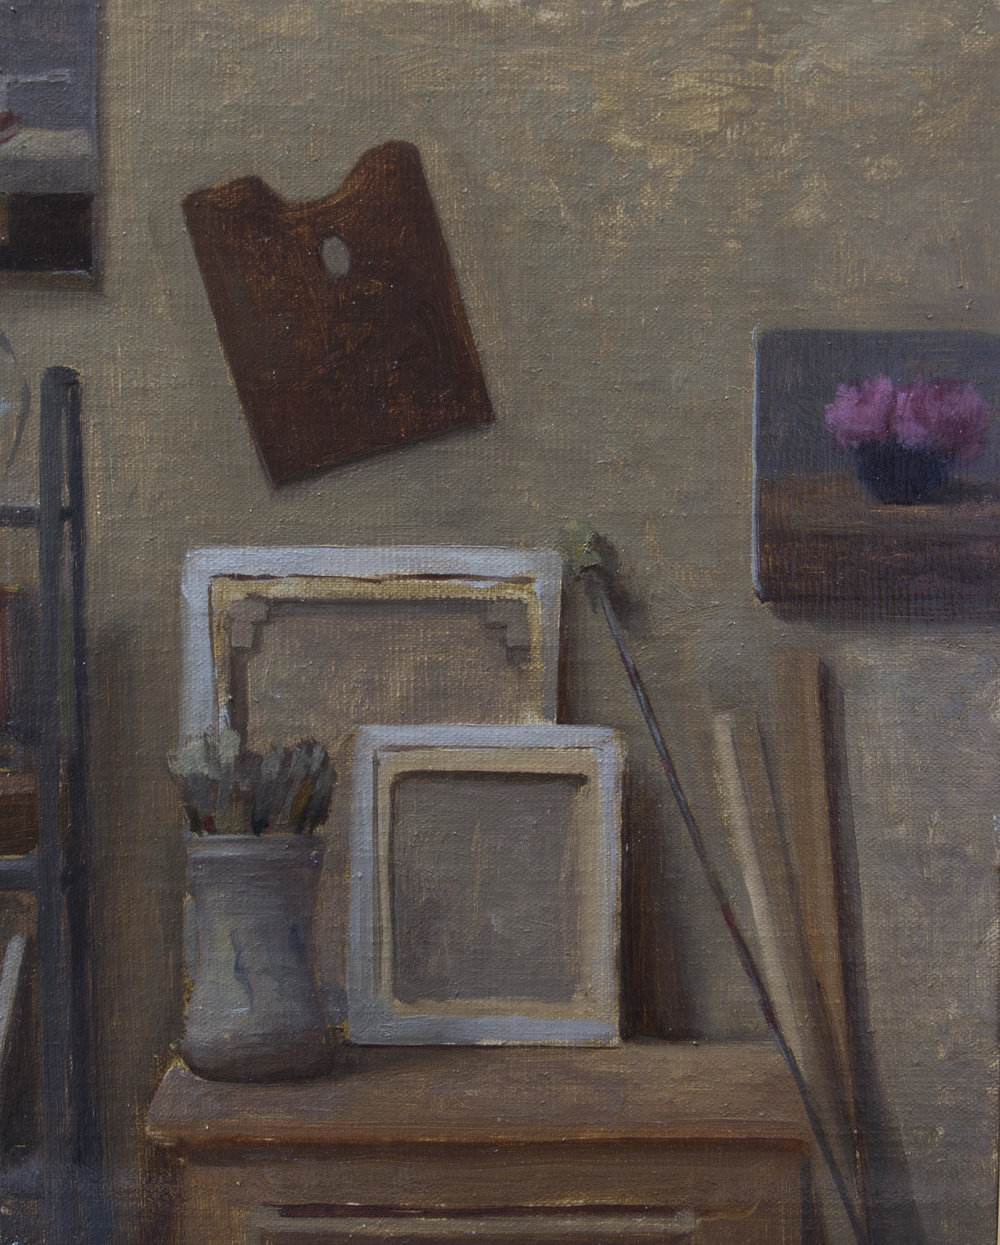 Studio Interior  by Rodrigo Mateo, 2017, oil on panel, 8 x 10 in, $1,200